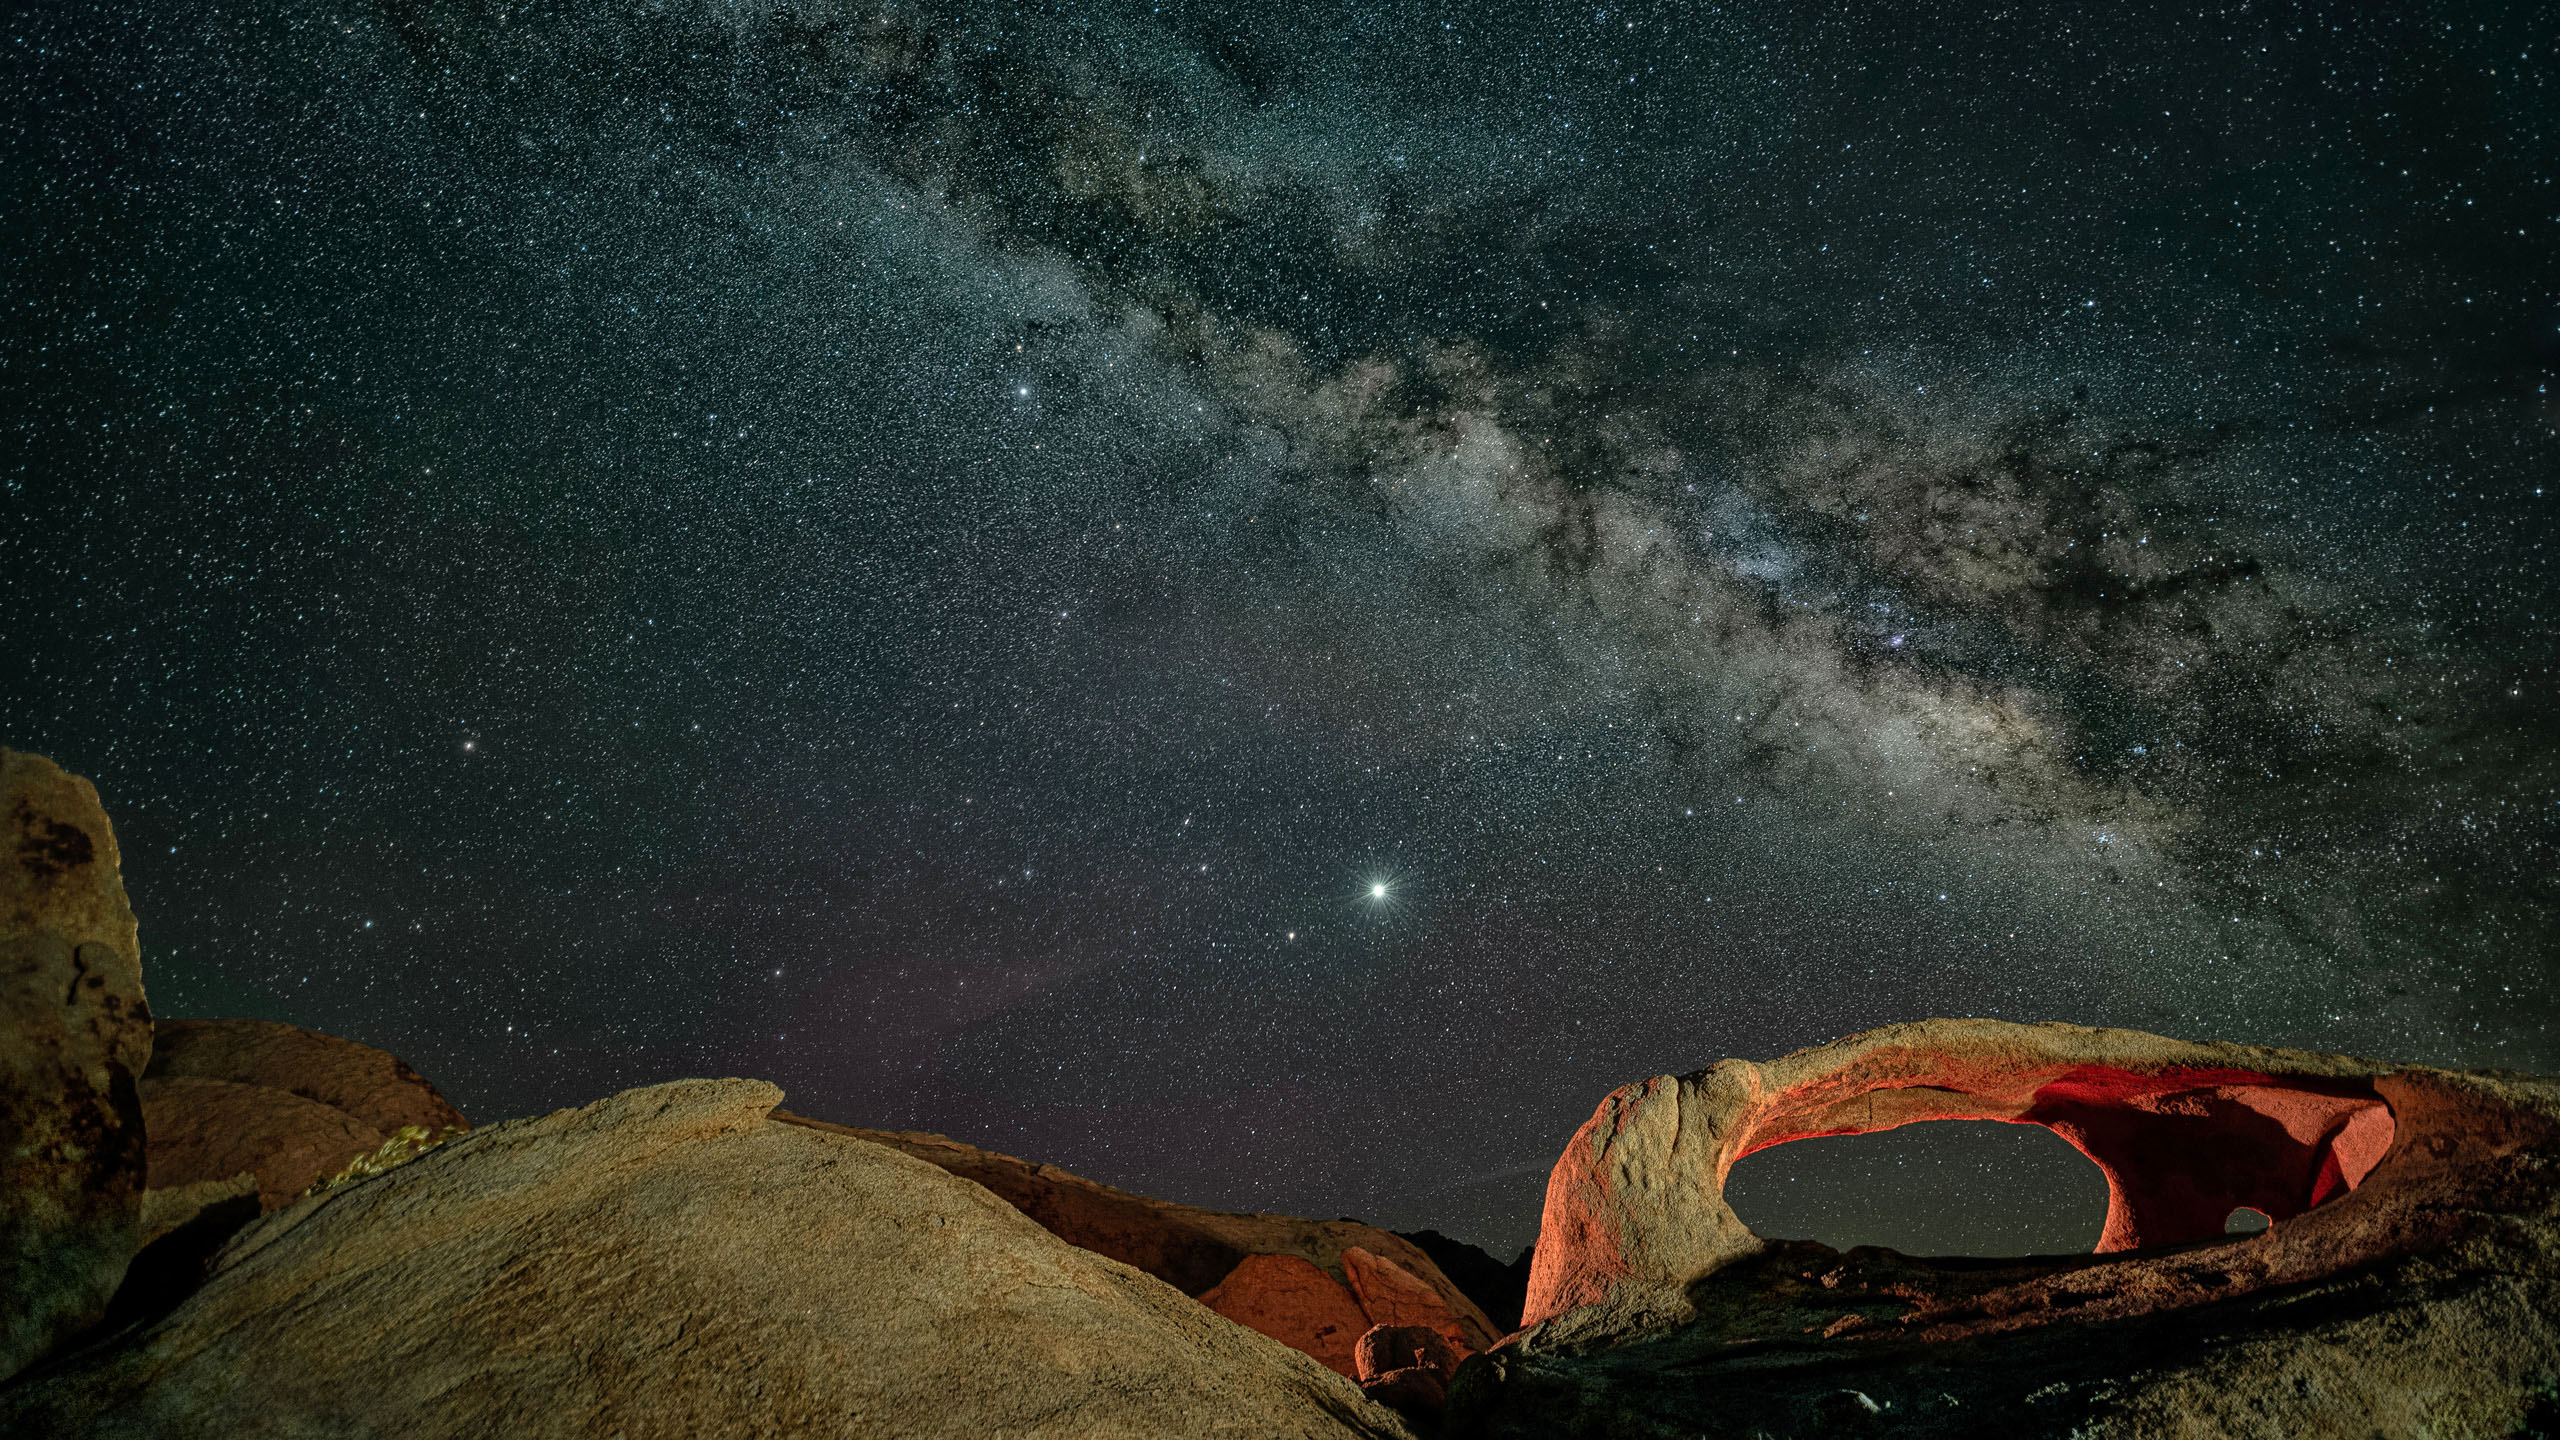 6322_kenlee_ojo-oro-arch_200517_0207_earth-135sf25iso400_sky17photosat15sf25iso4000_milkyway-landscape-low-lookingup_2560x1440px-Photofocus-Header